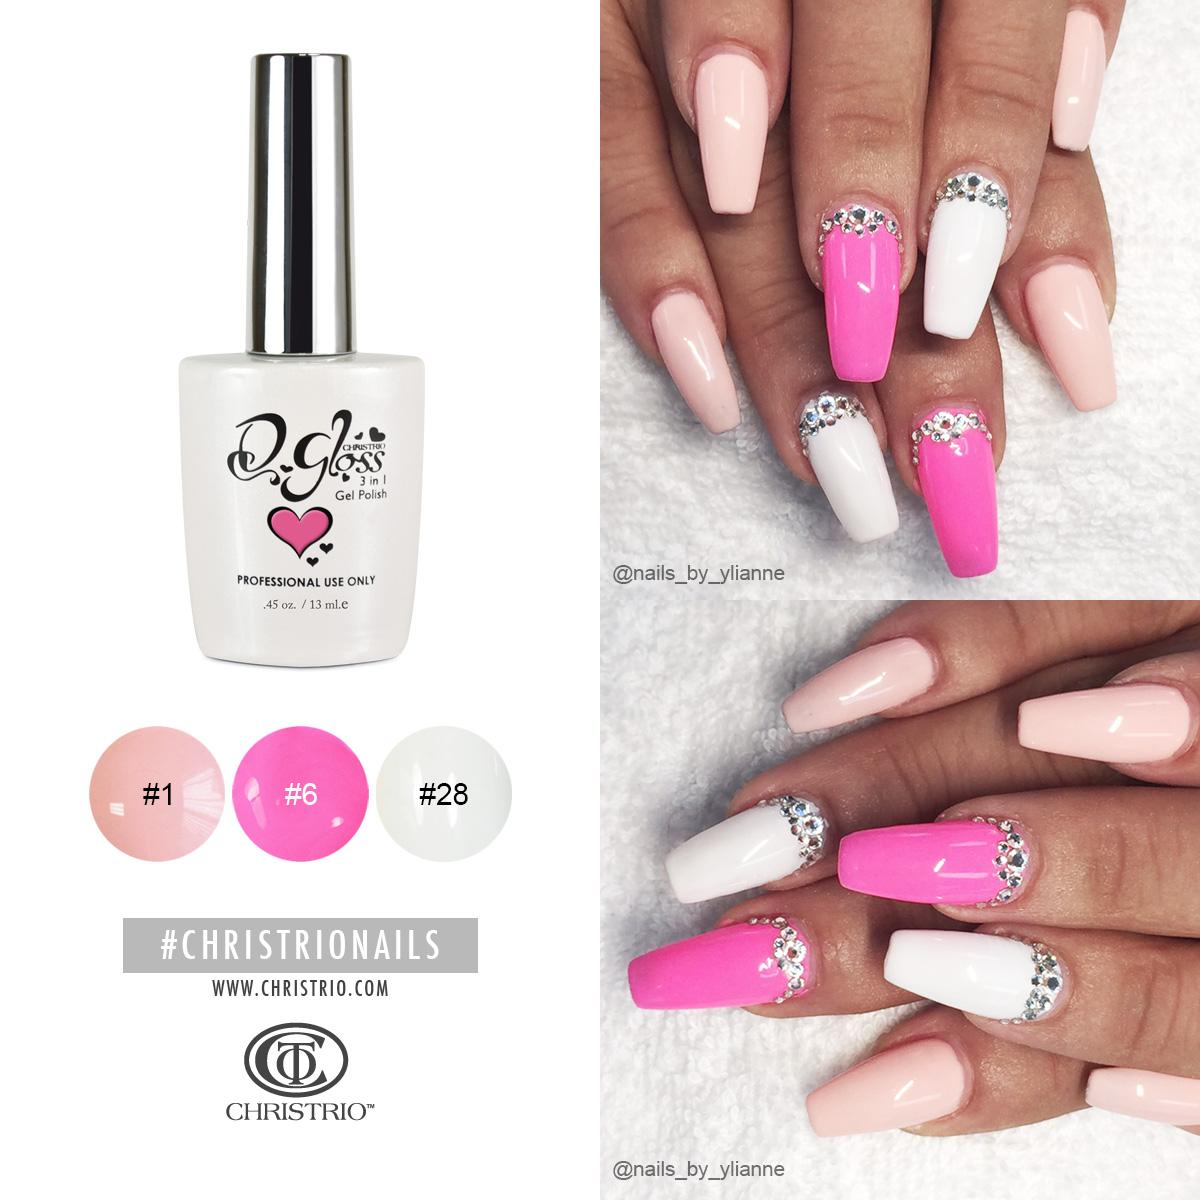 Christrio Nails On Twitter Simple Stunning Created With S Infamous Q Gloss 3 In 1 Gel Polish Nailart Beauty Fashion Pink